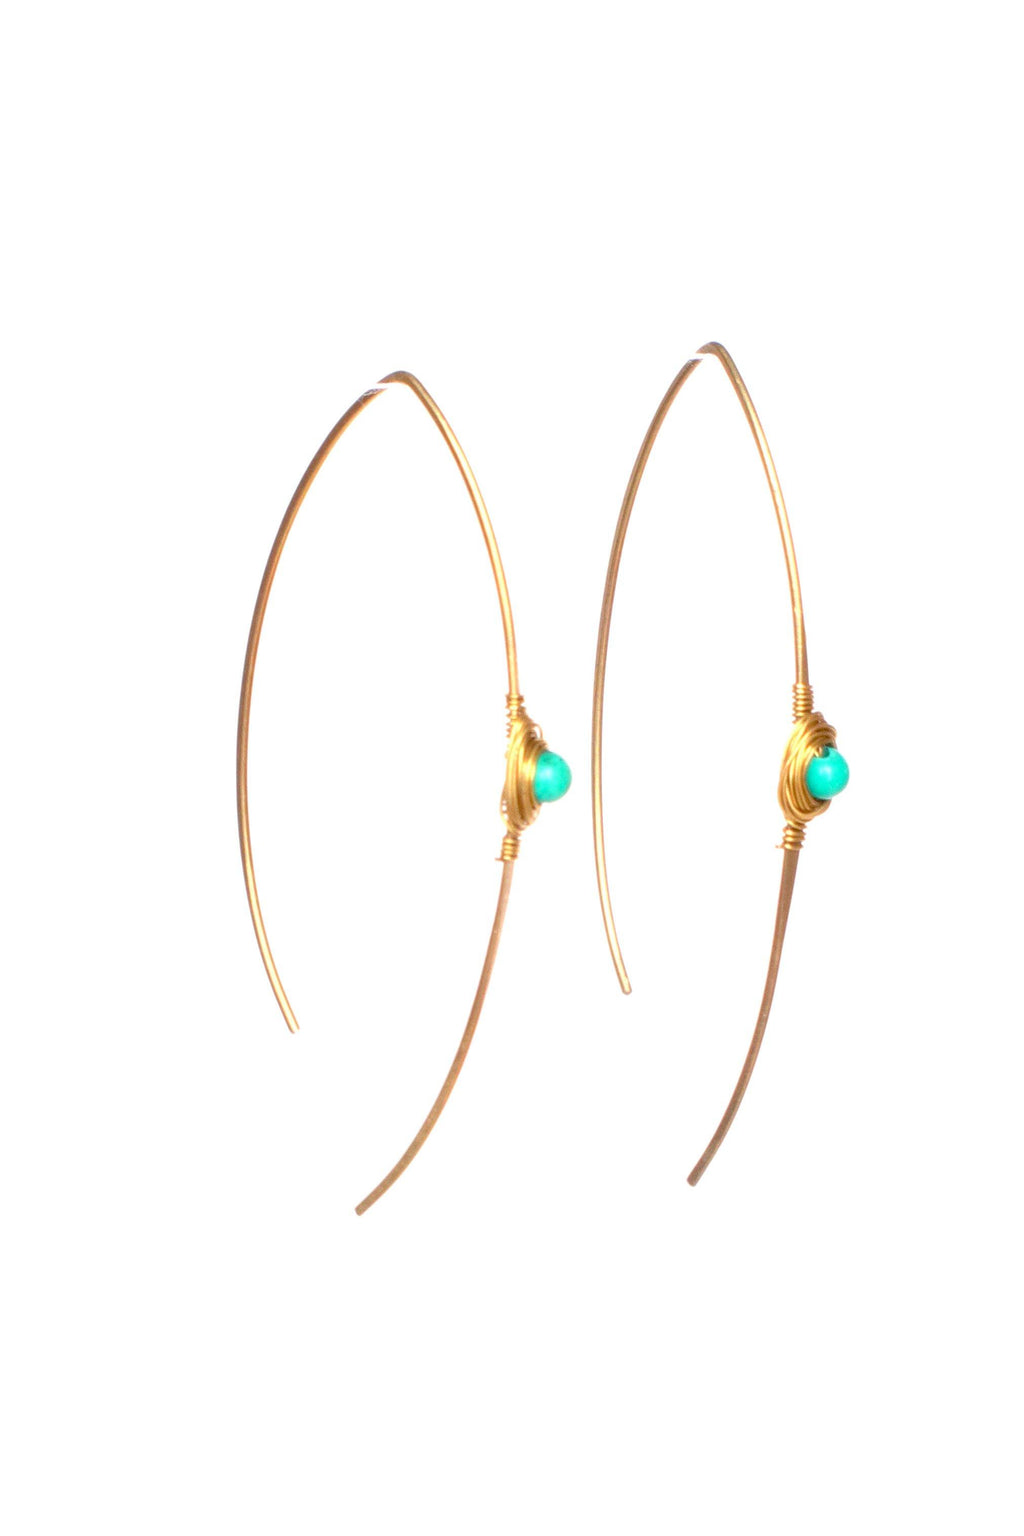 These wishbone gemstone earrings are wire wrapped giving it a genuine, handmade look.  This pair is made with turquoise gemstones. This product is handmade and fairtrade in Thailand.